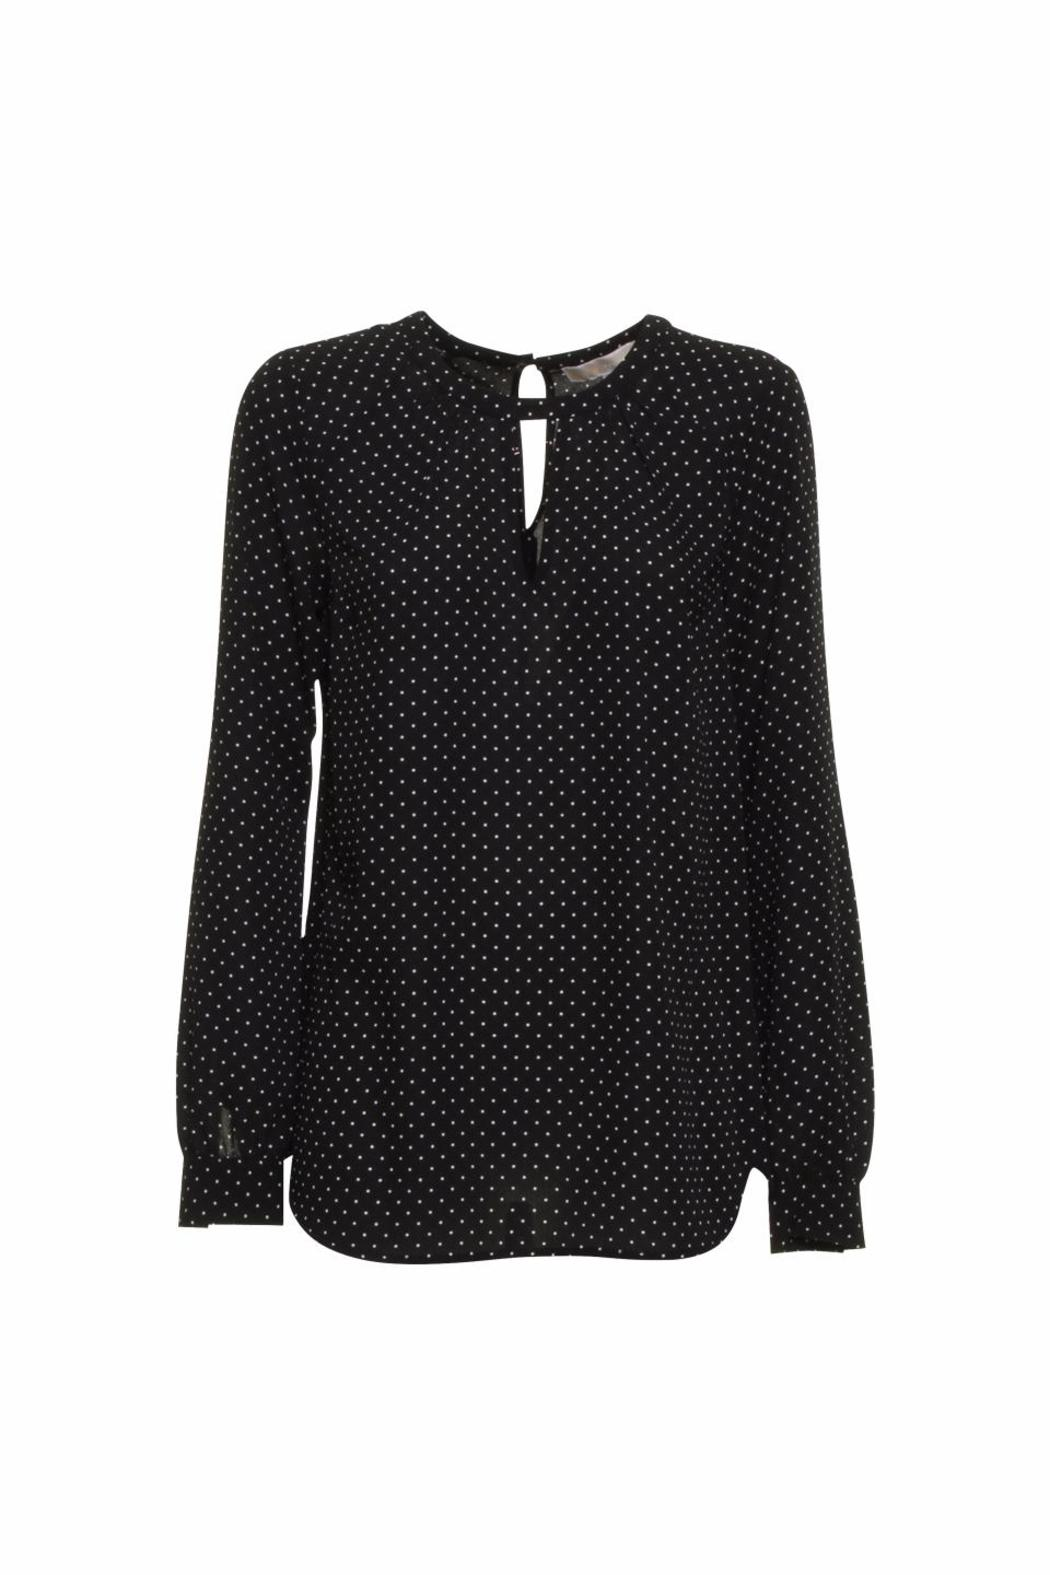 Michael by Michael Kors Polka Dot Blouse - Side Cropped Image